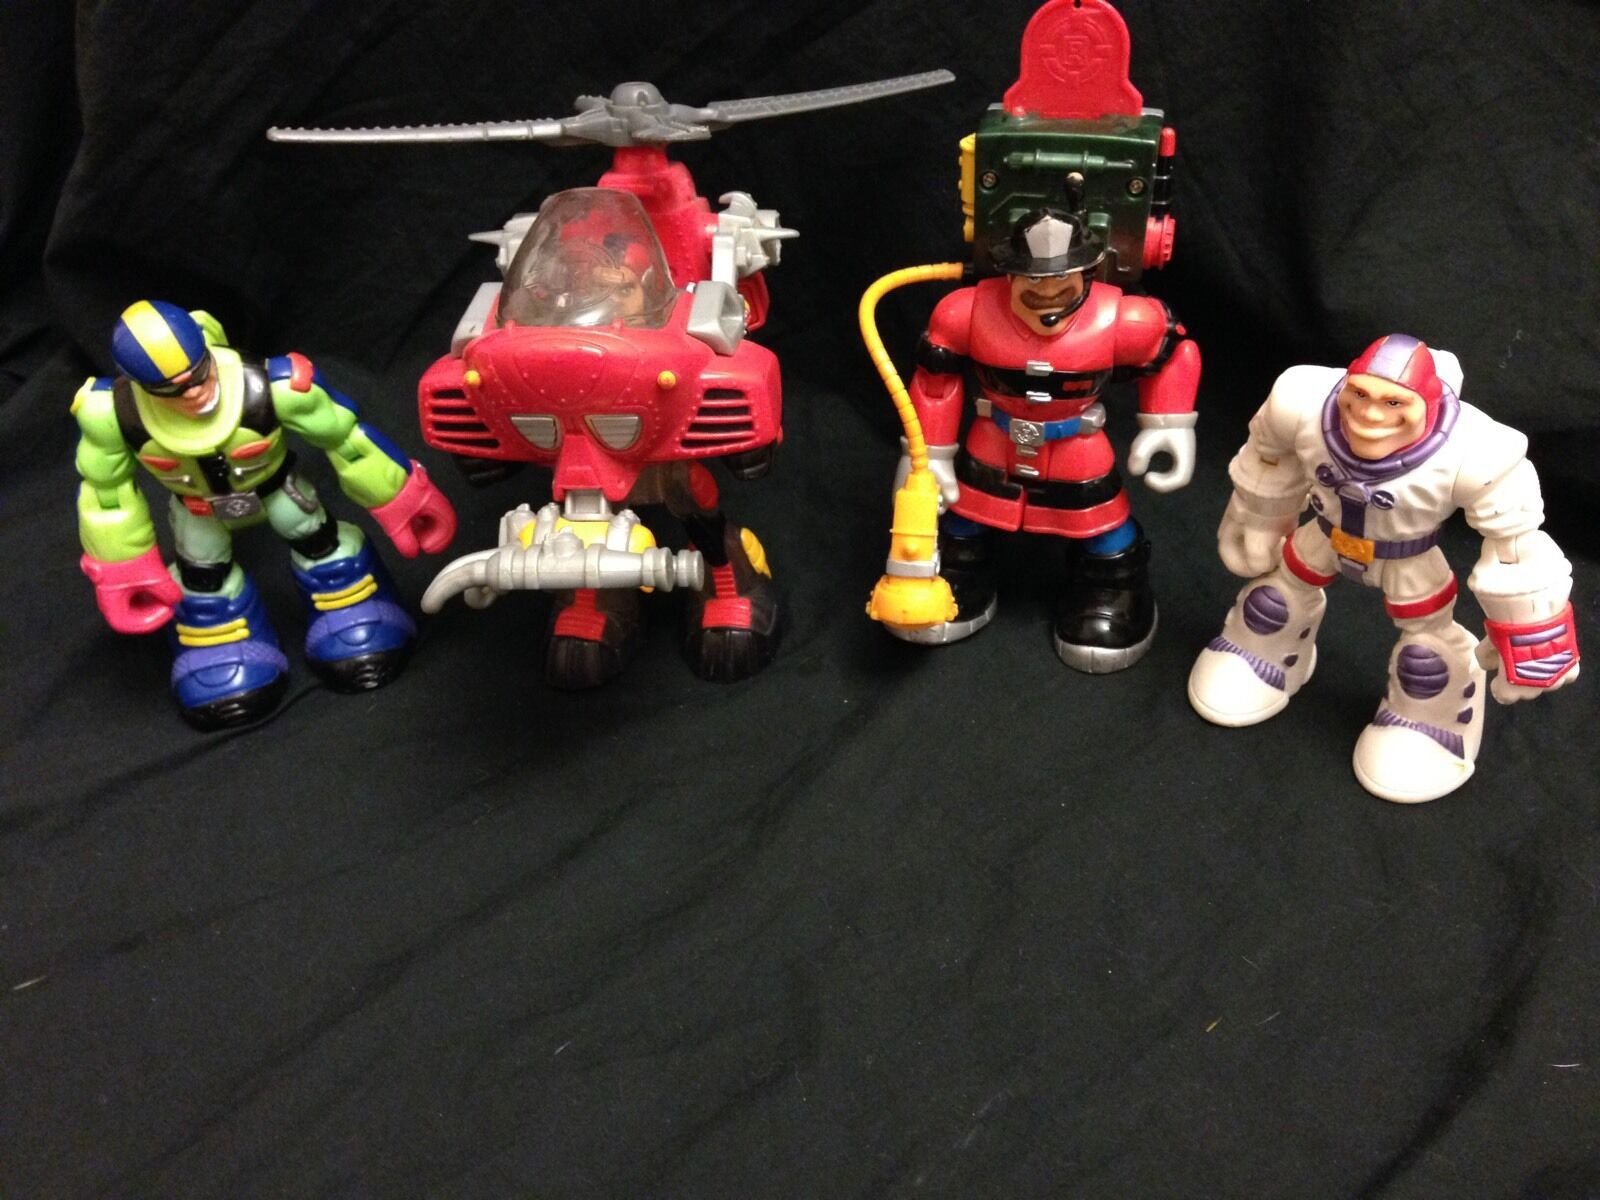 Rescue Heroes Lot of 4 Figures Fisher Price Action Figures & Vehicle Toys GUC